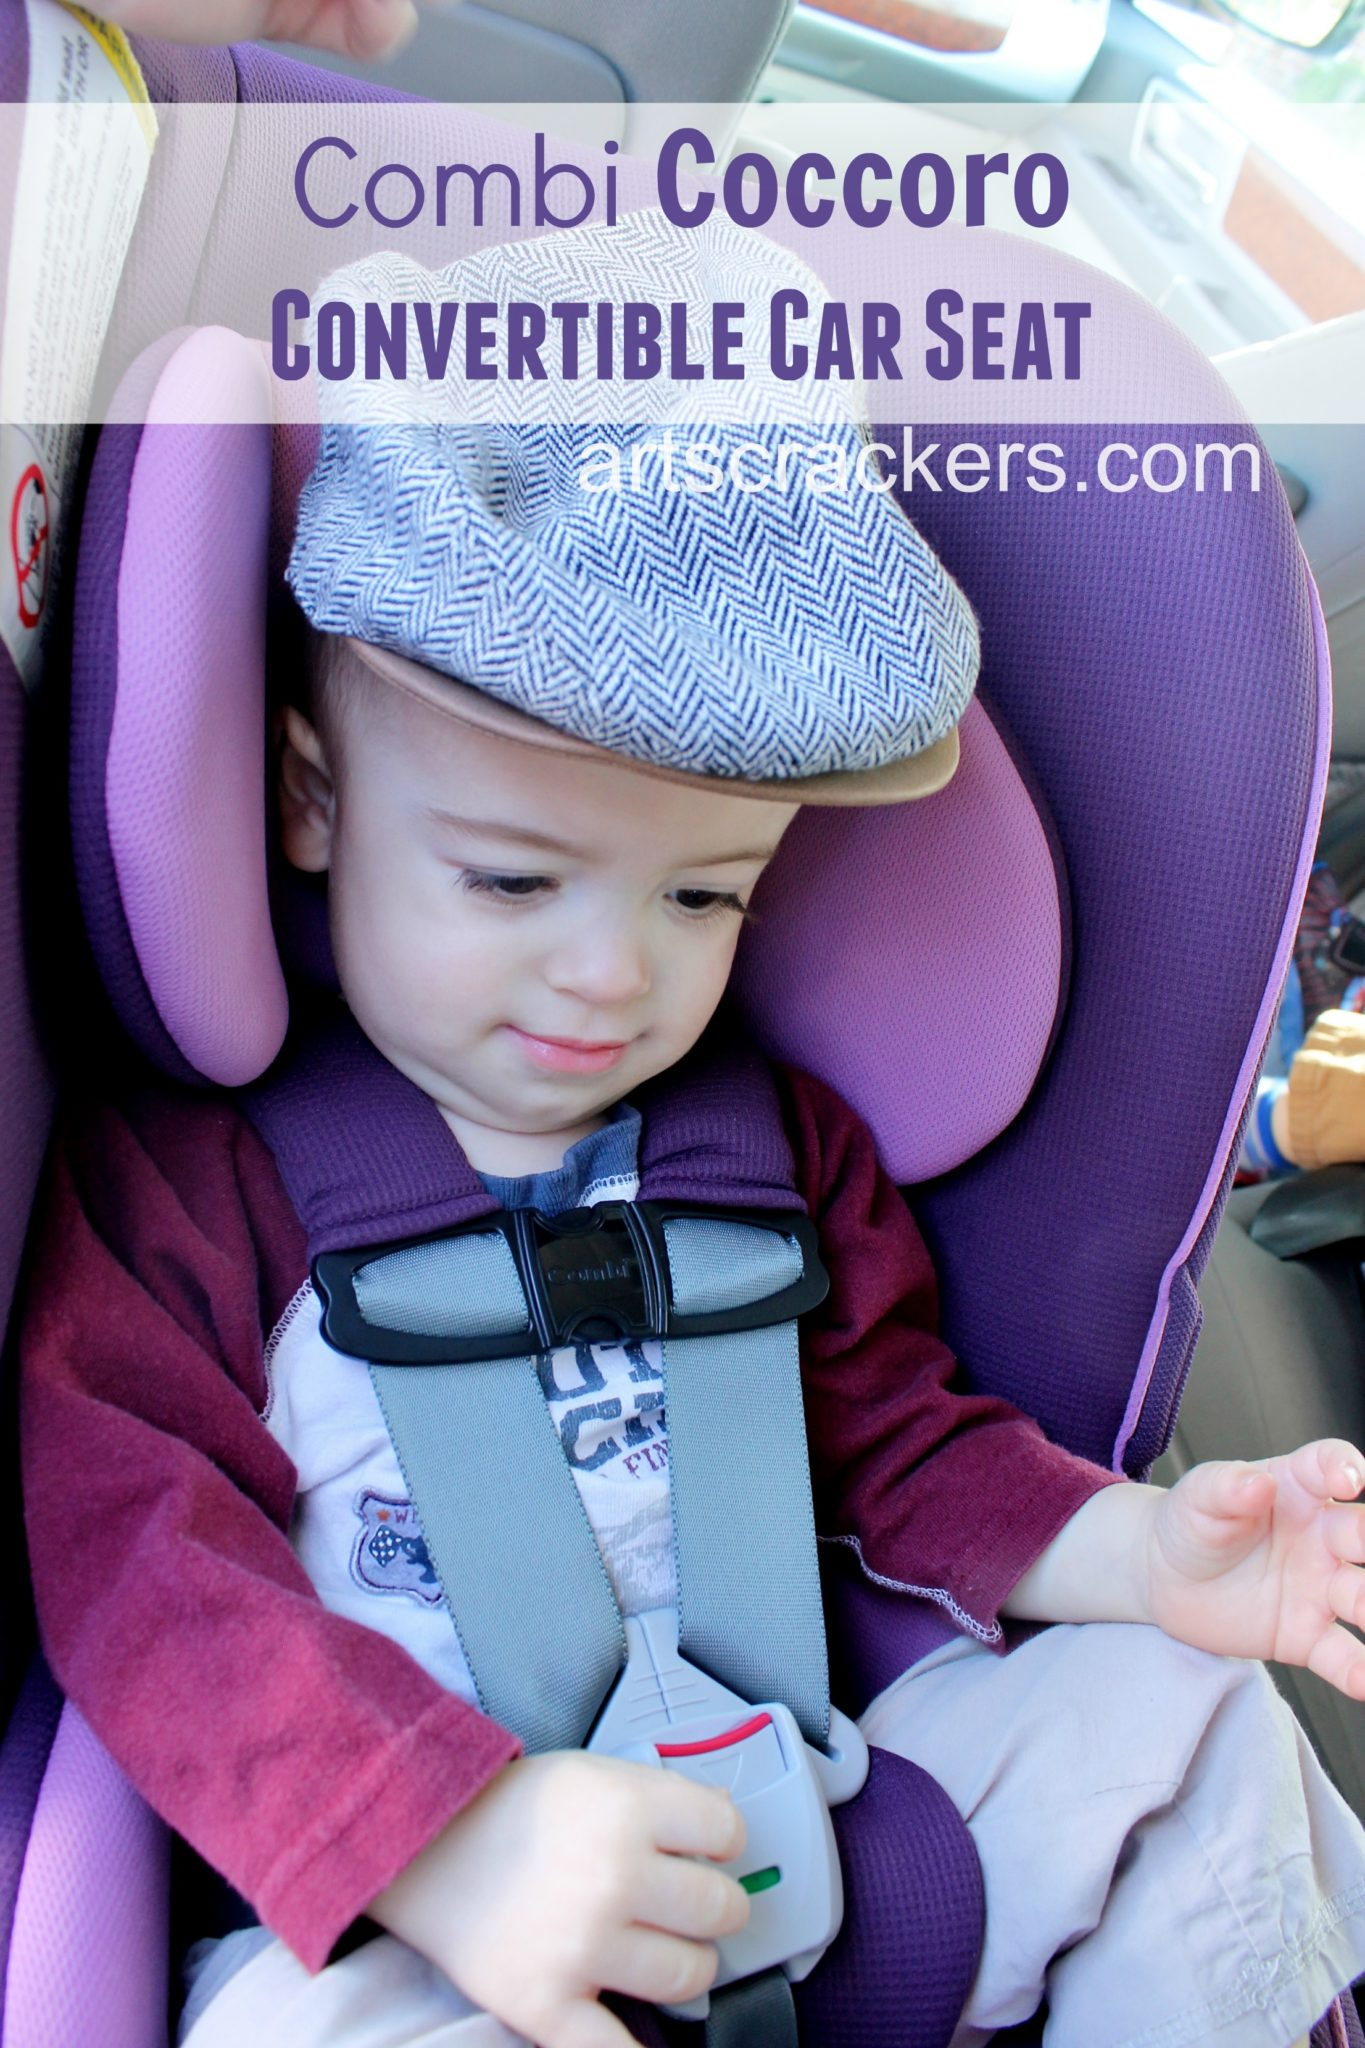 Combi Coccoro Convertible Car Seat in Grape. Click the picture to read the review.